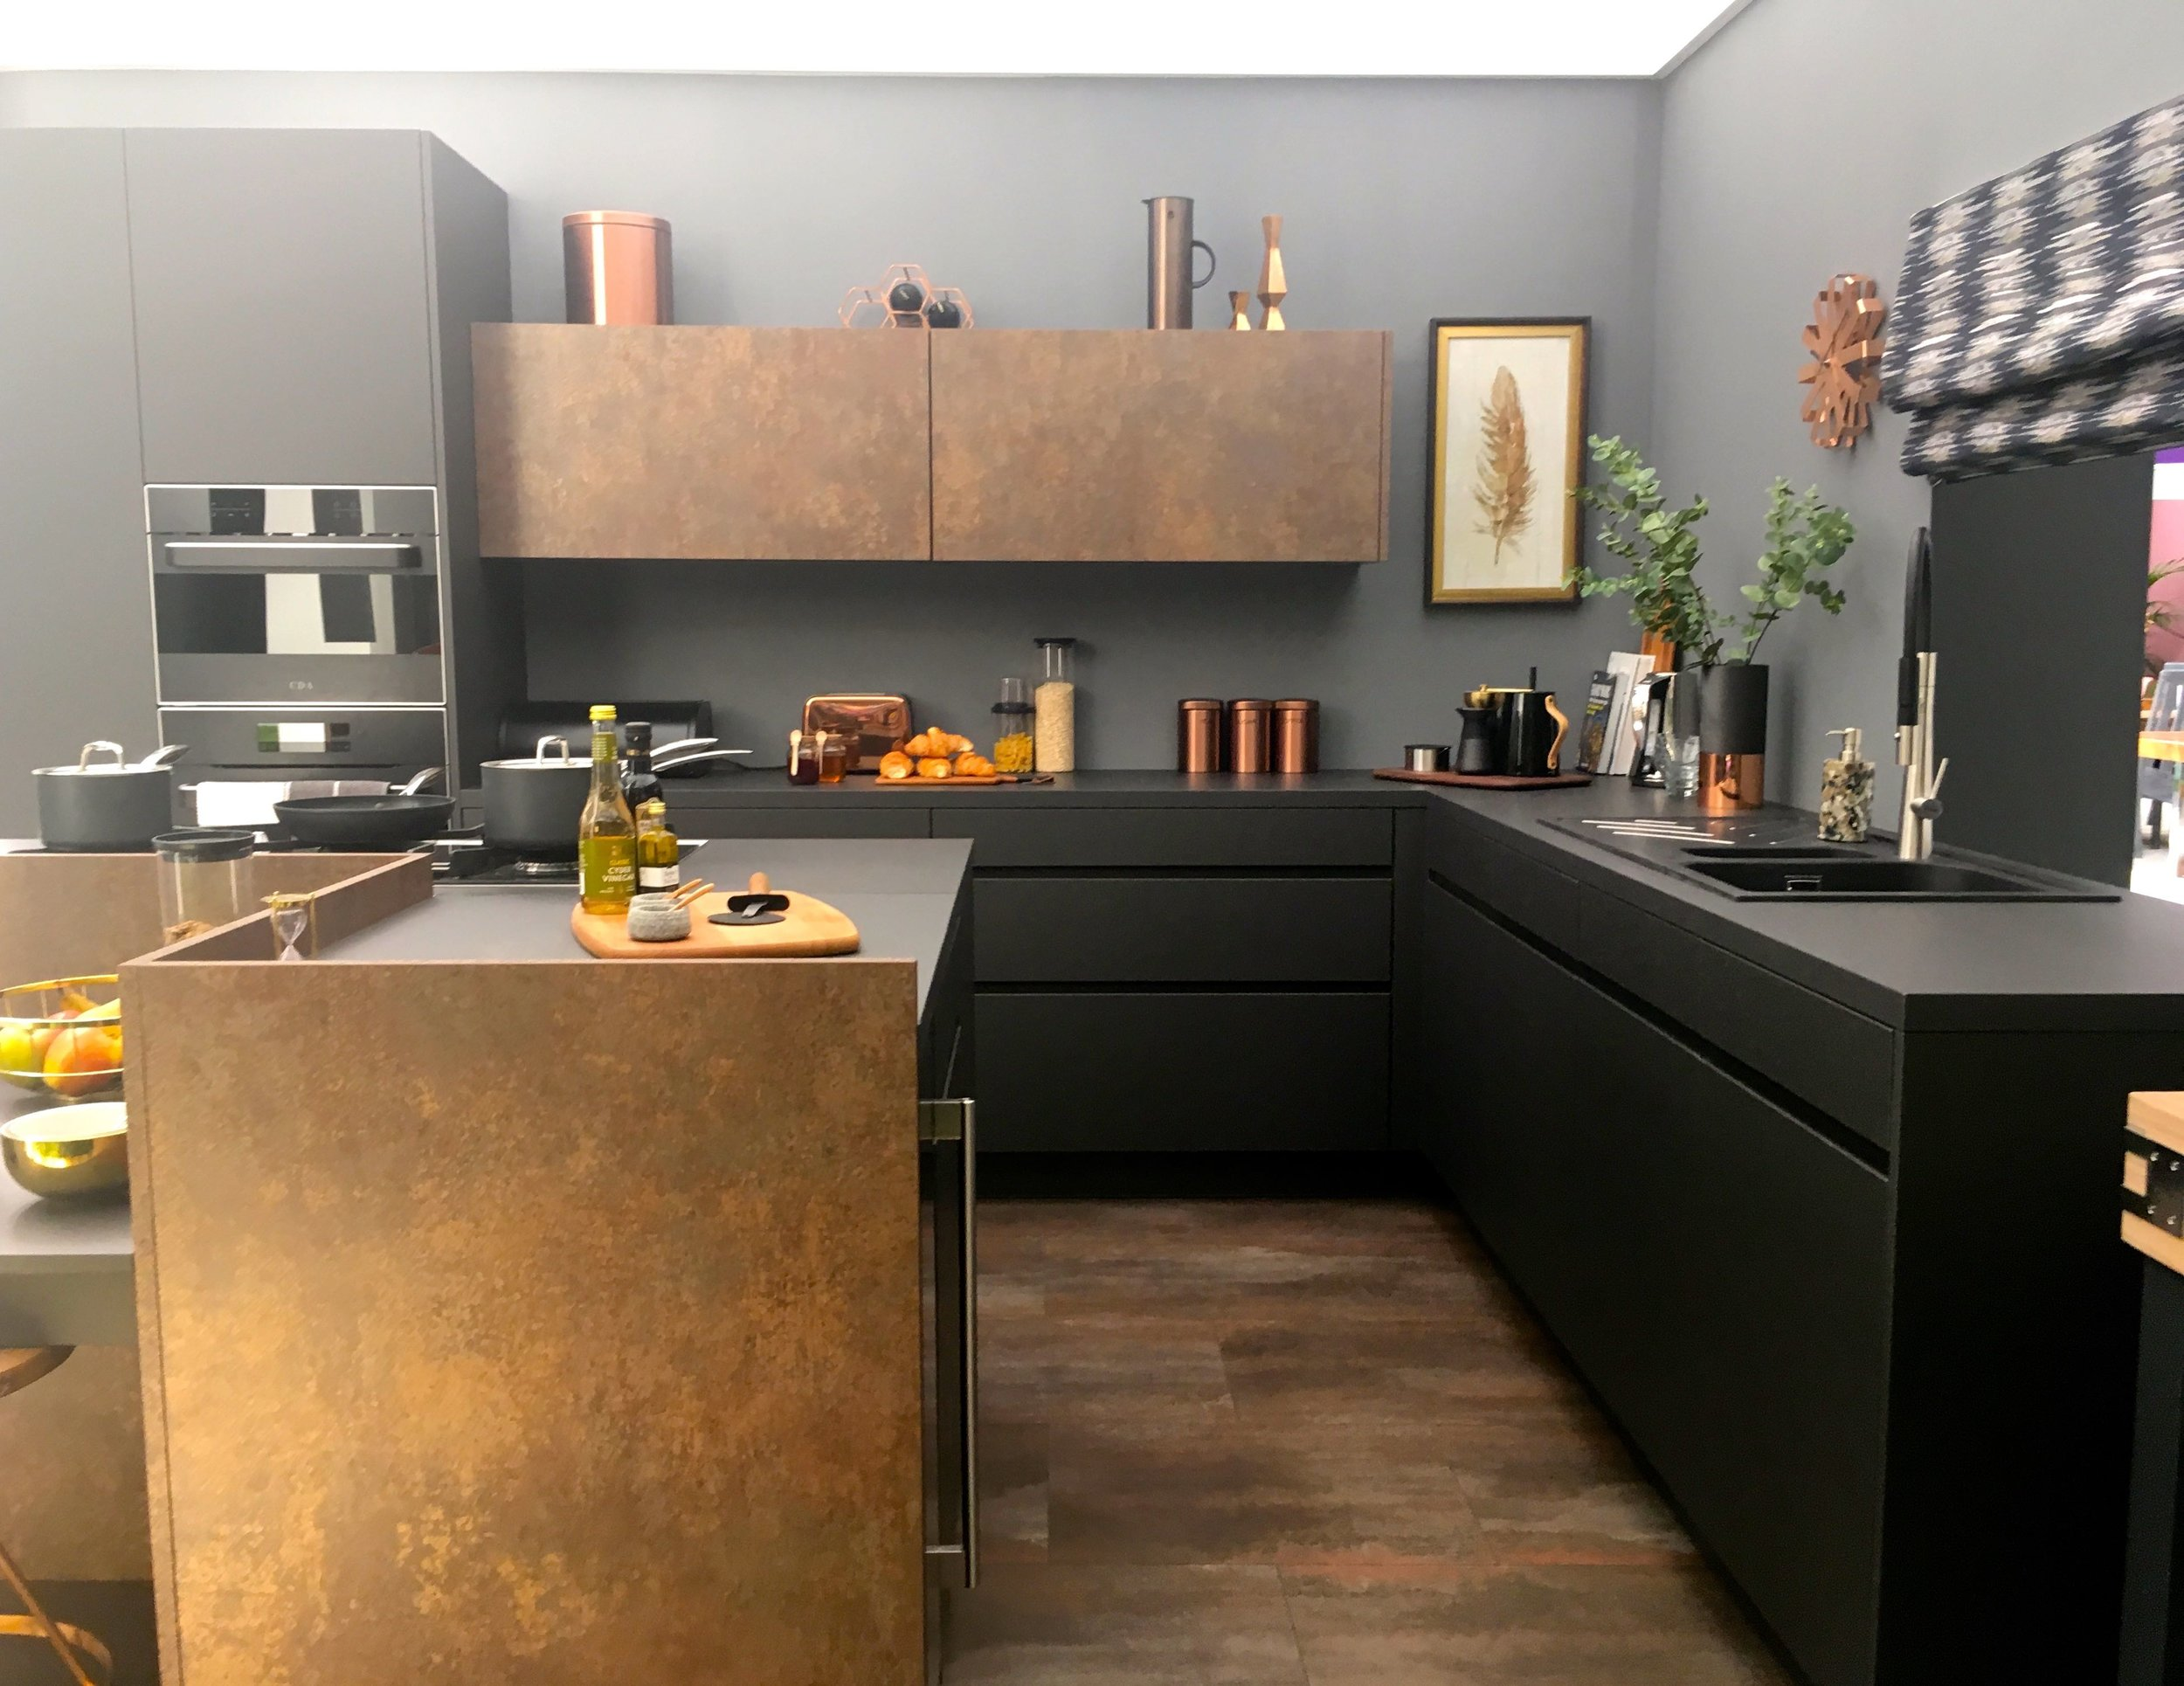 dark greys and earthy tones in this dramatic kitchen at the ideal home show